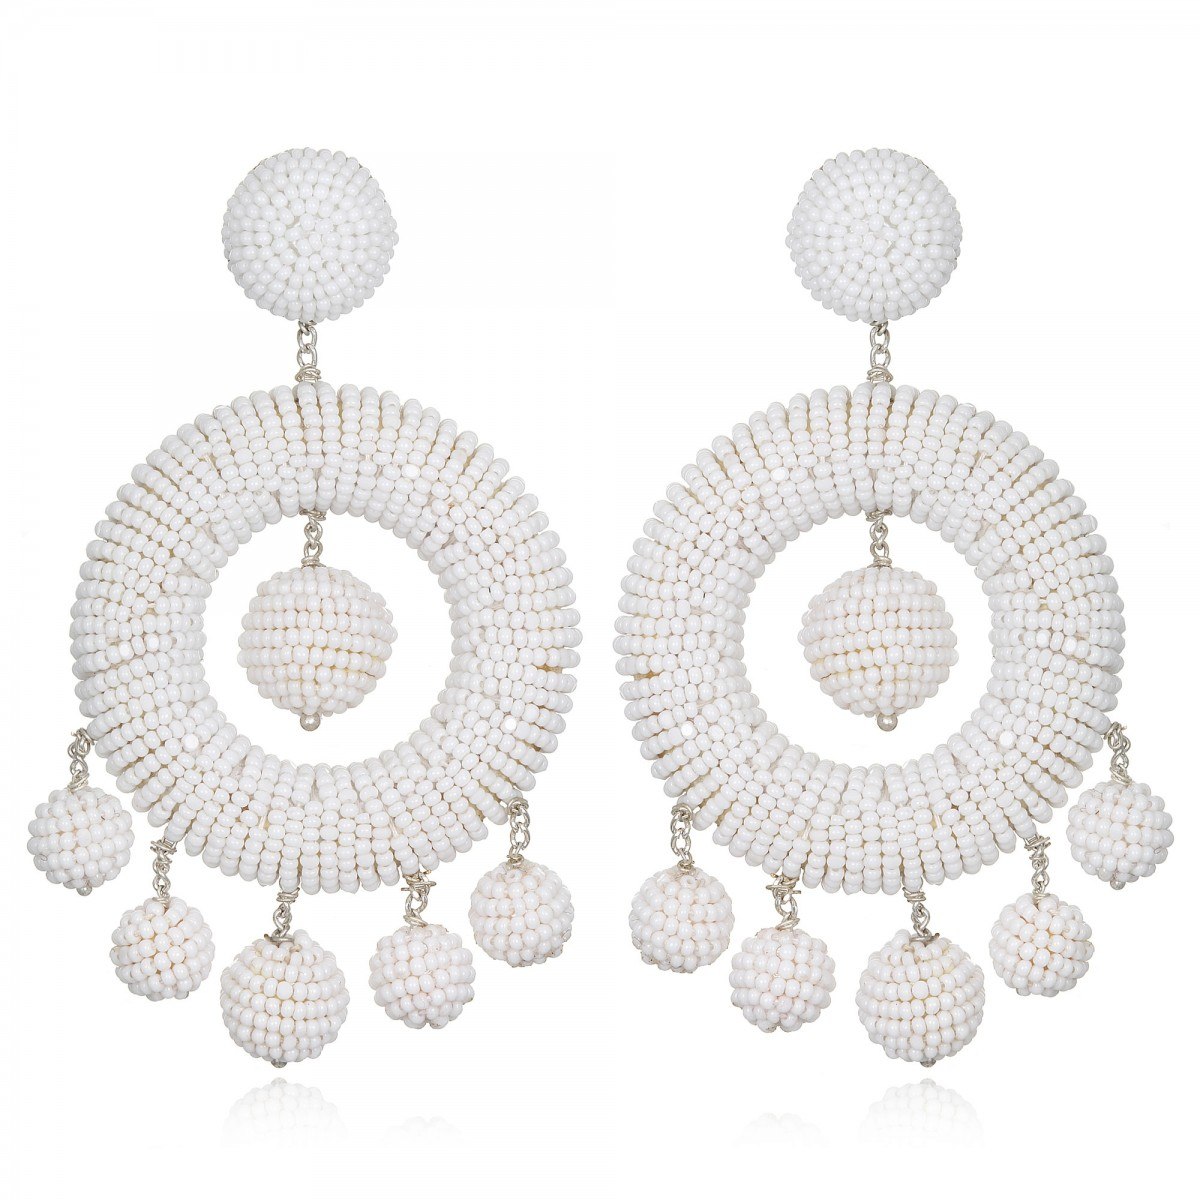 White Beaded Hoop Earrings by SUZANNA DAI